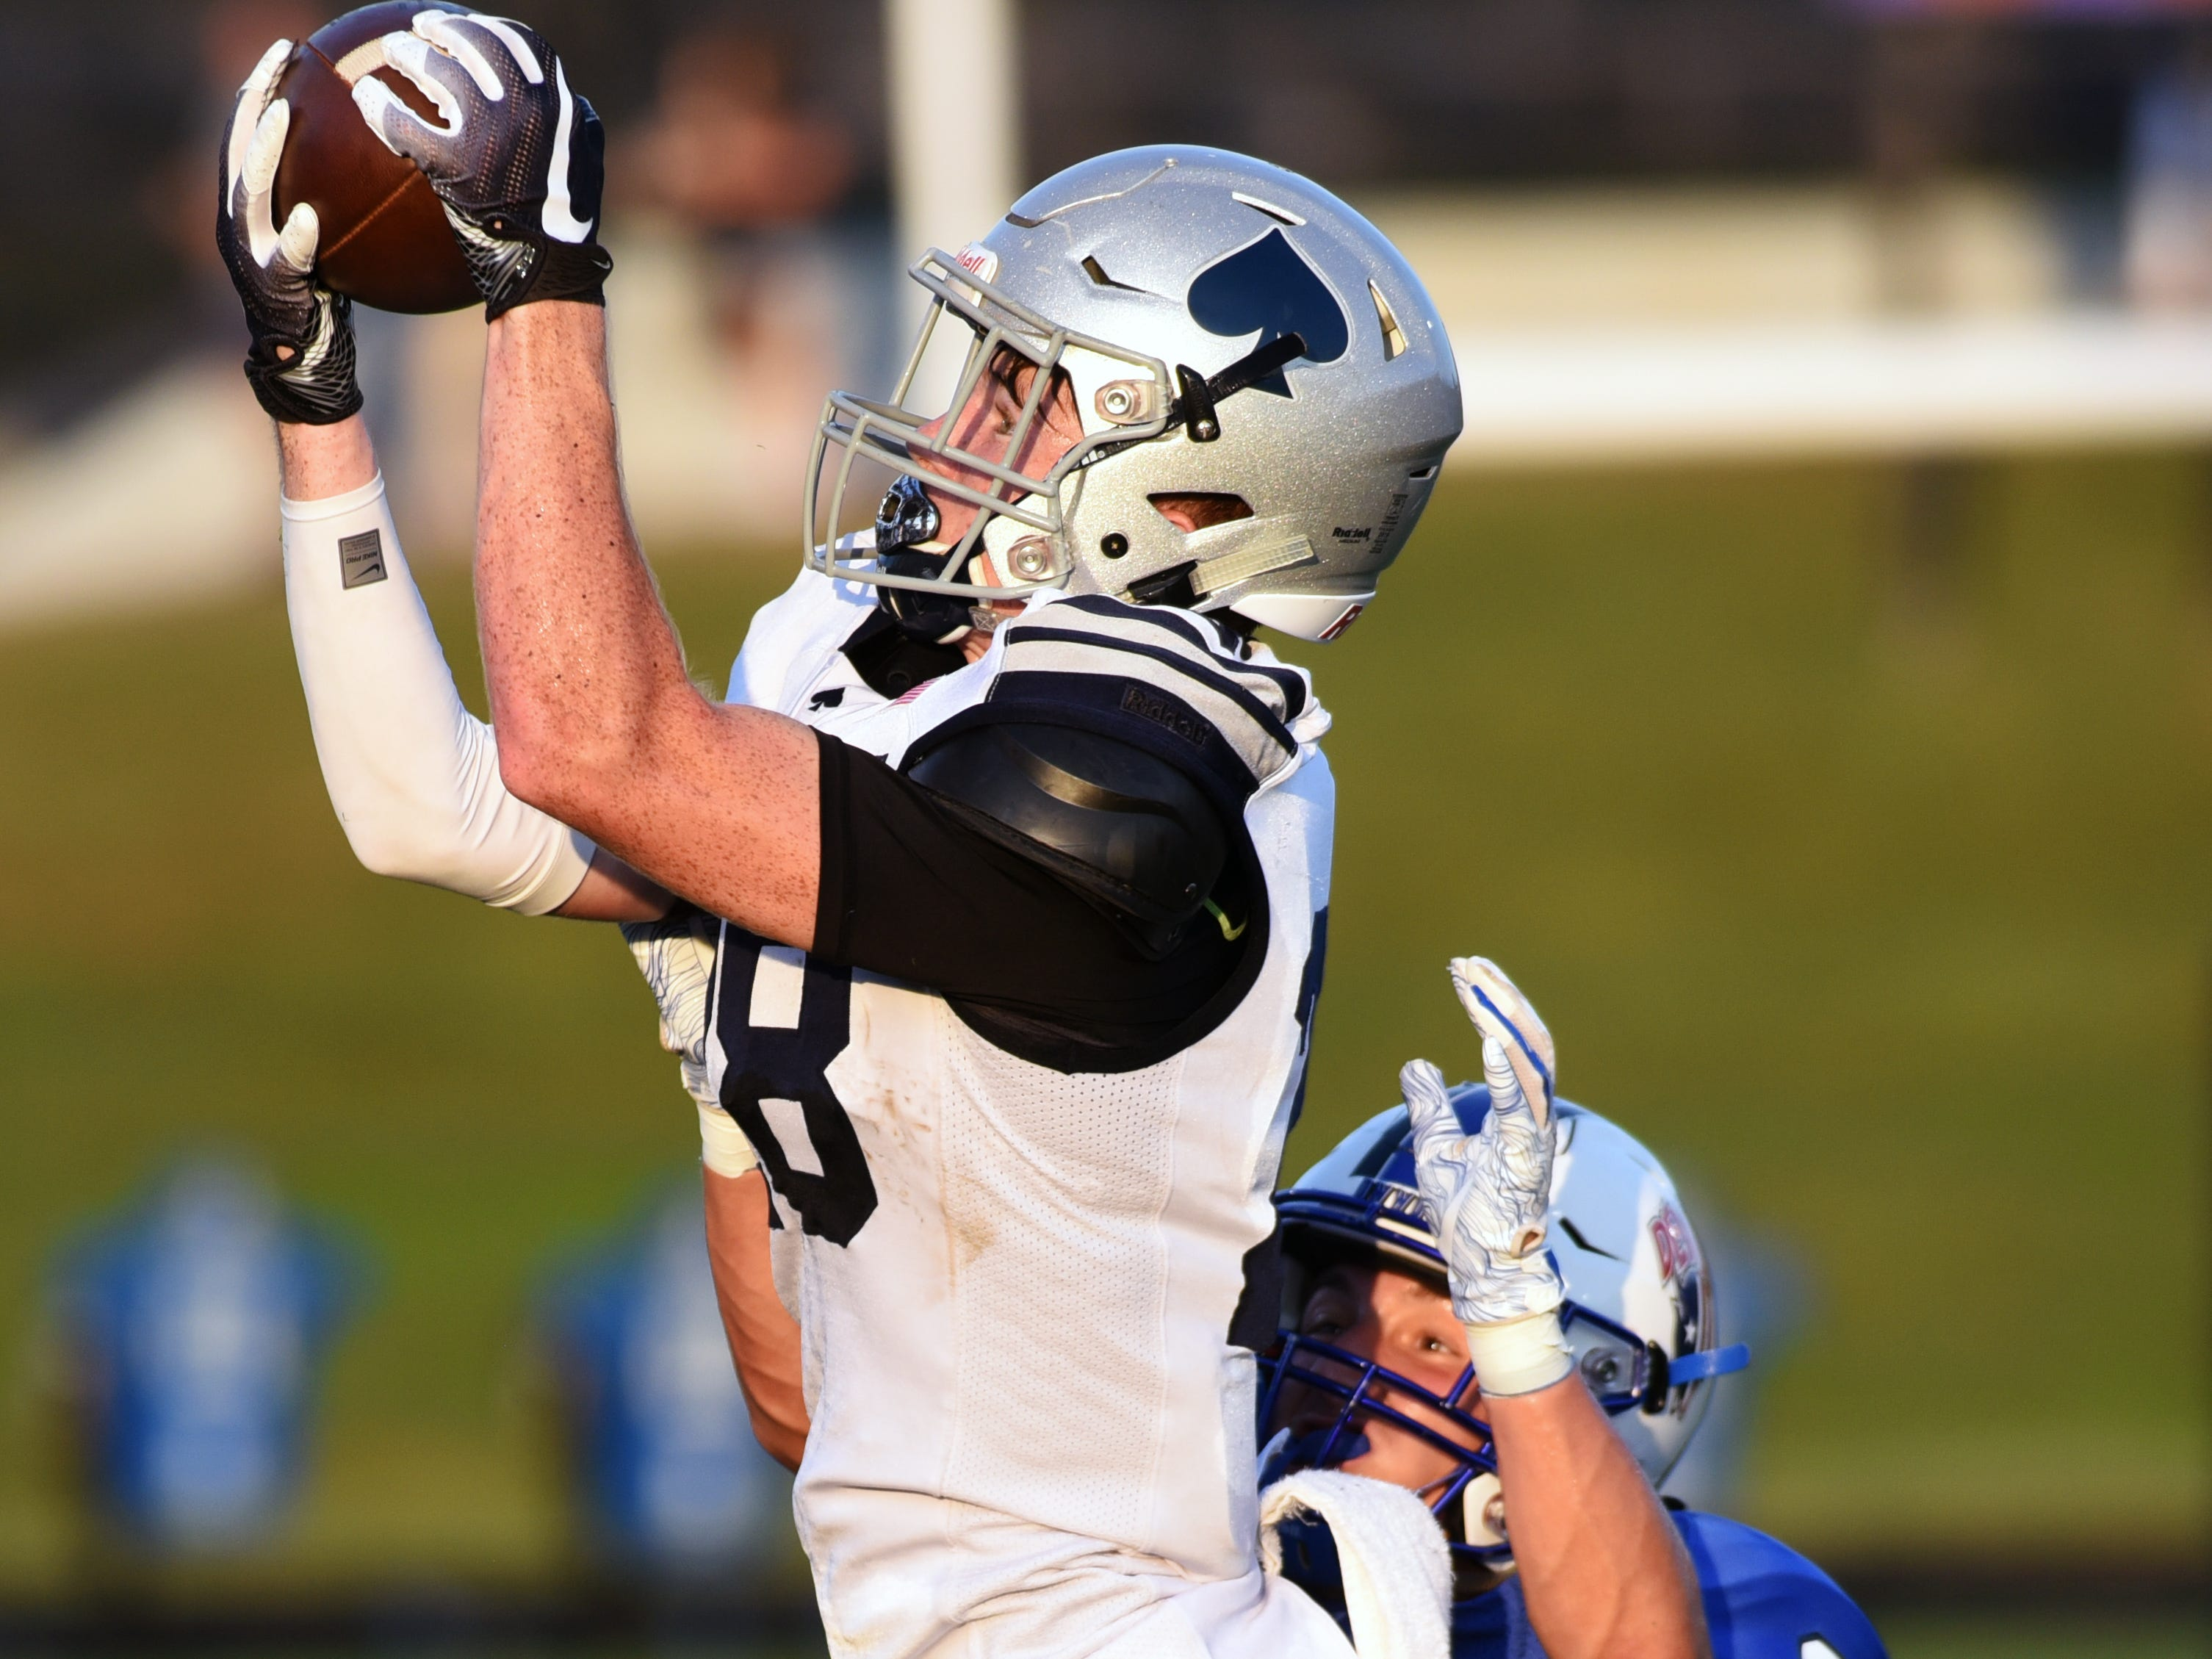 Zach Walsh catches a pass in the first quarter for Granville. The Blue Aces held on for a 17-14 win against Zanesville on Friday night at John D. Sulsberger Memorial Stadium.